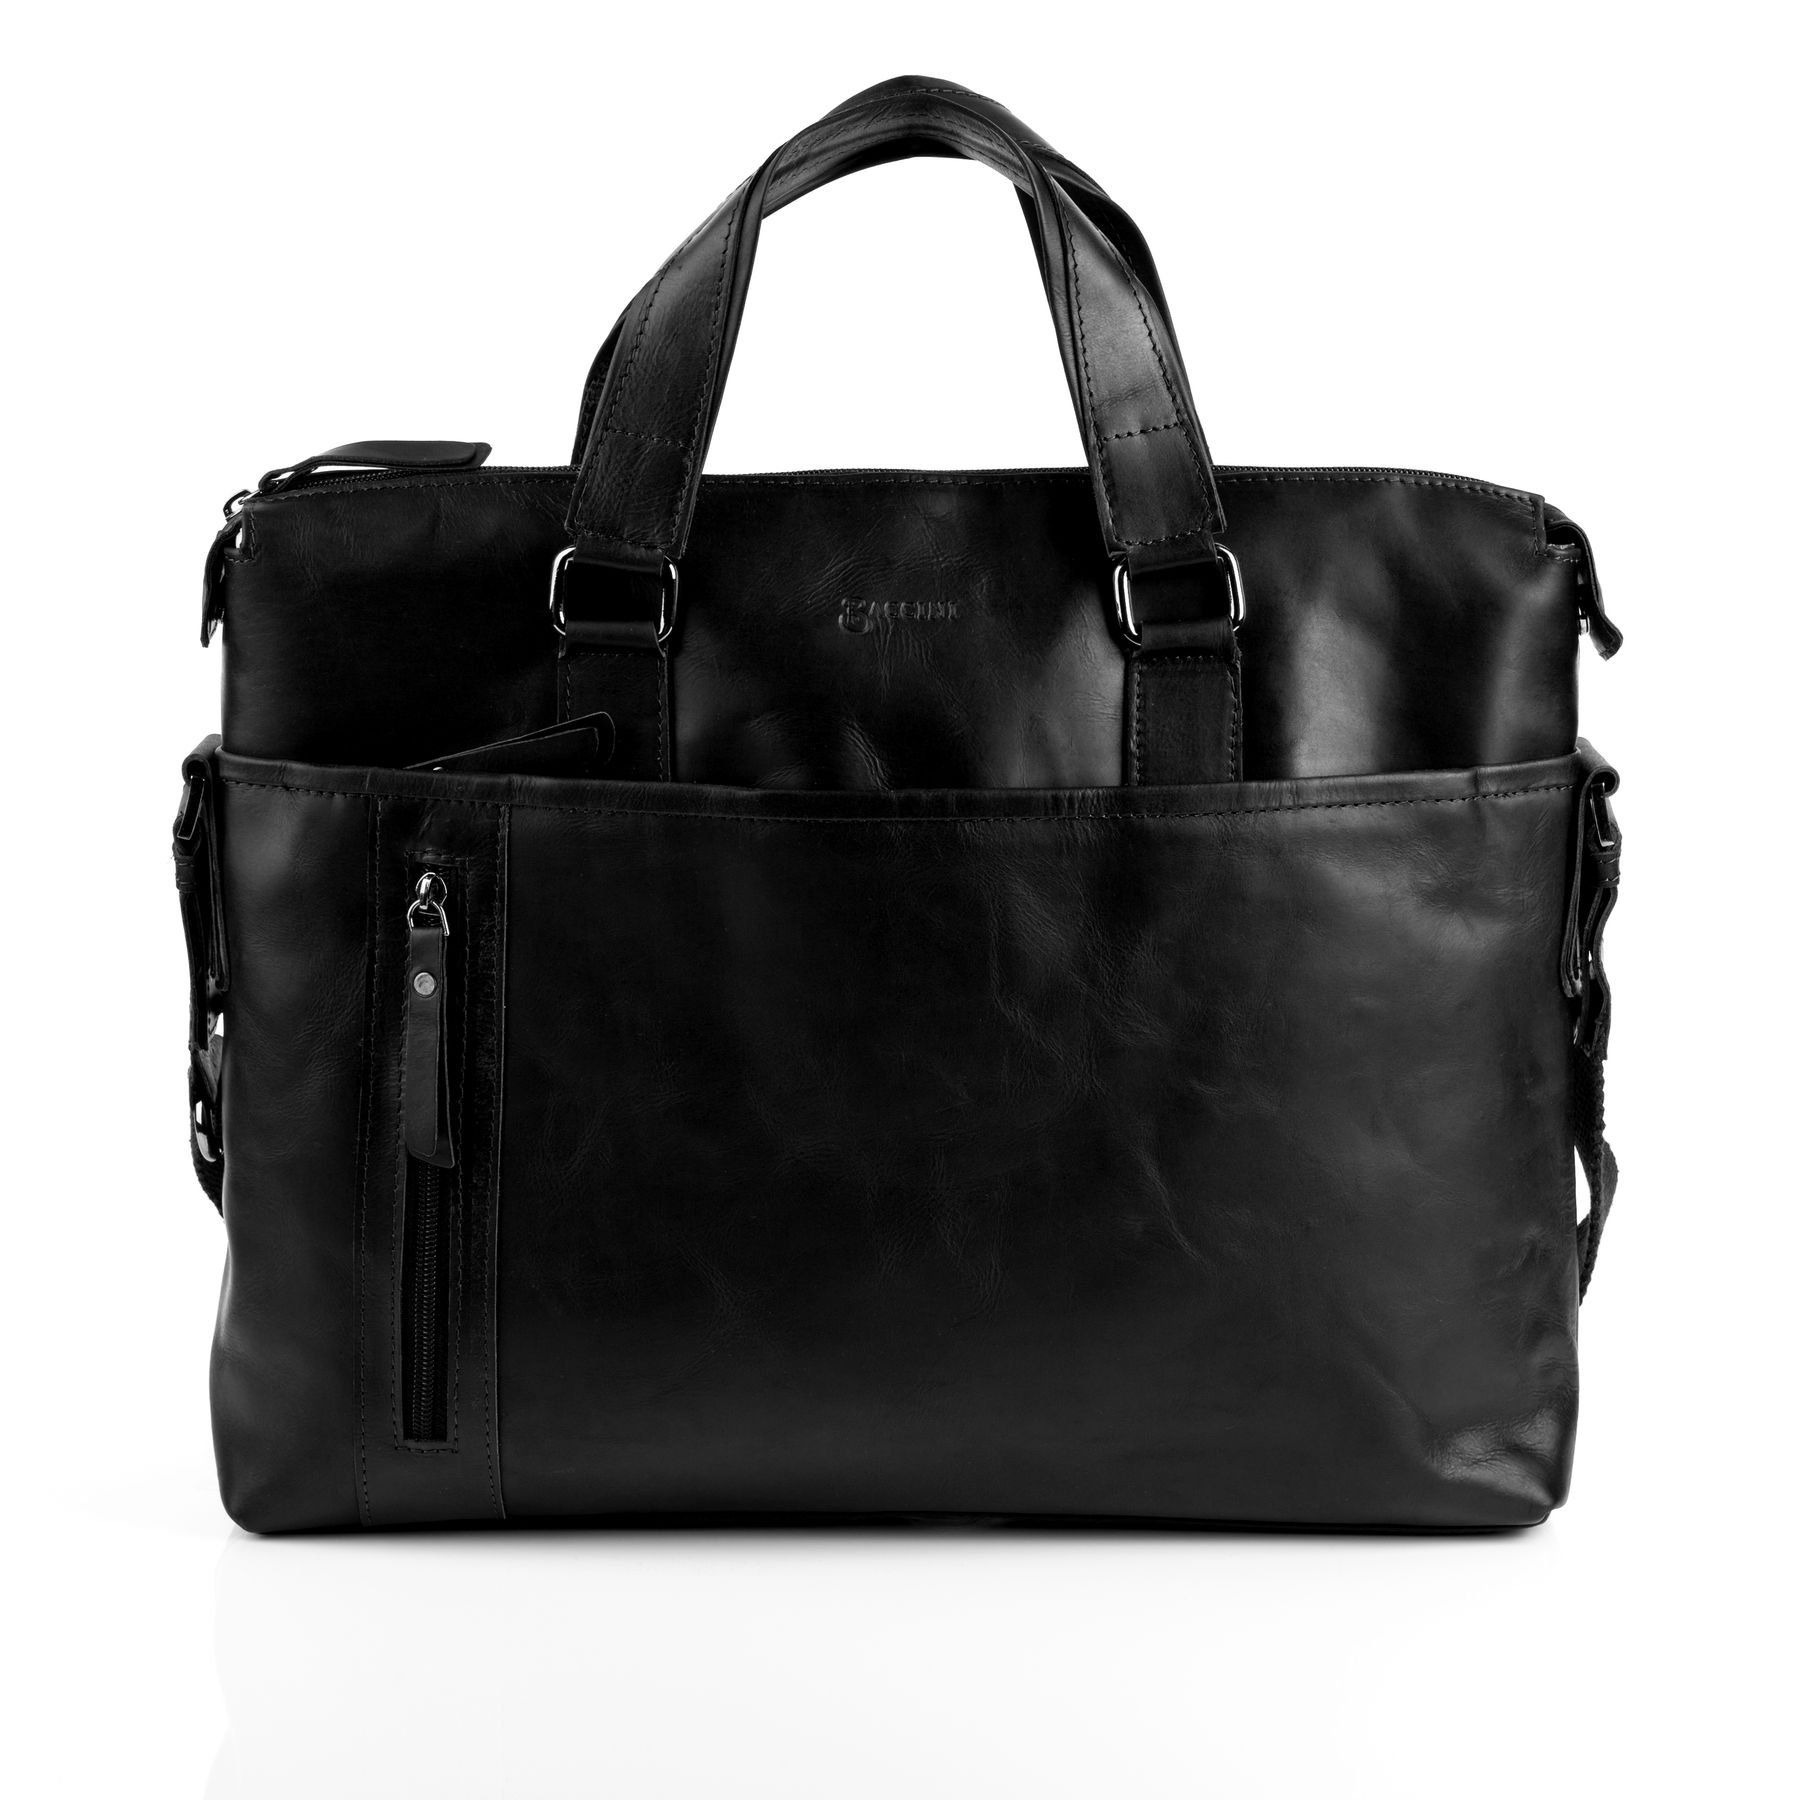 Cuir En Sacoche Portable Noir Baccini Document Sac Ordinateur Porte TkPiwXOZu